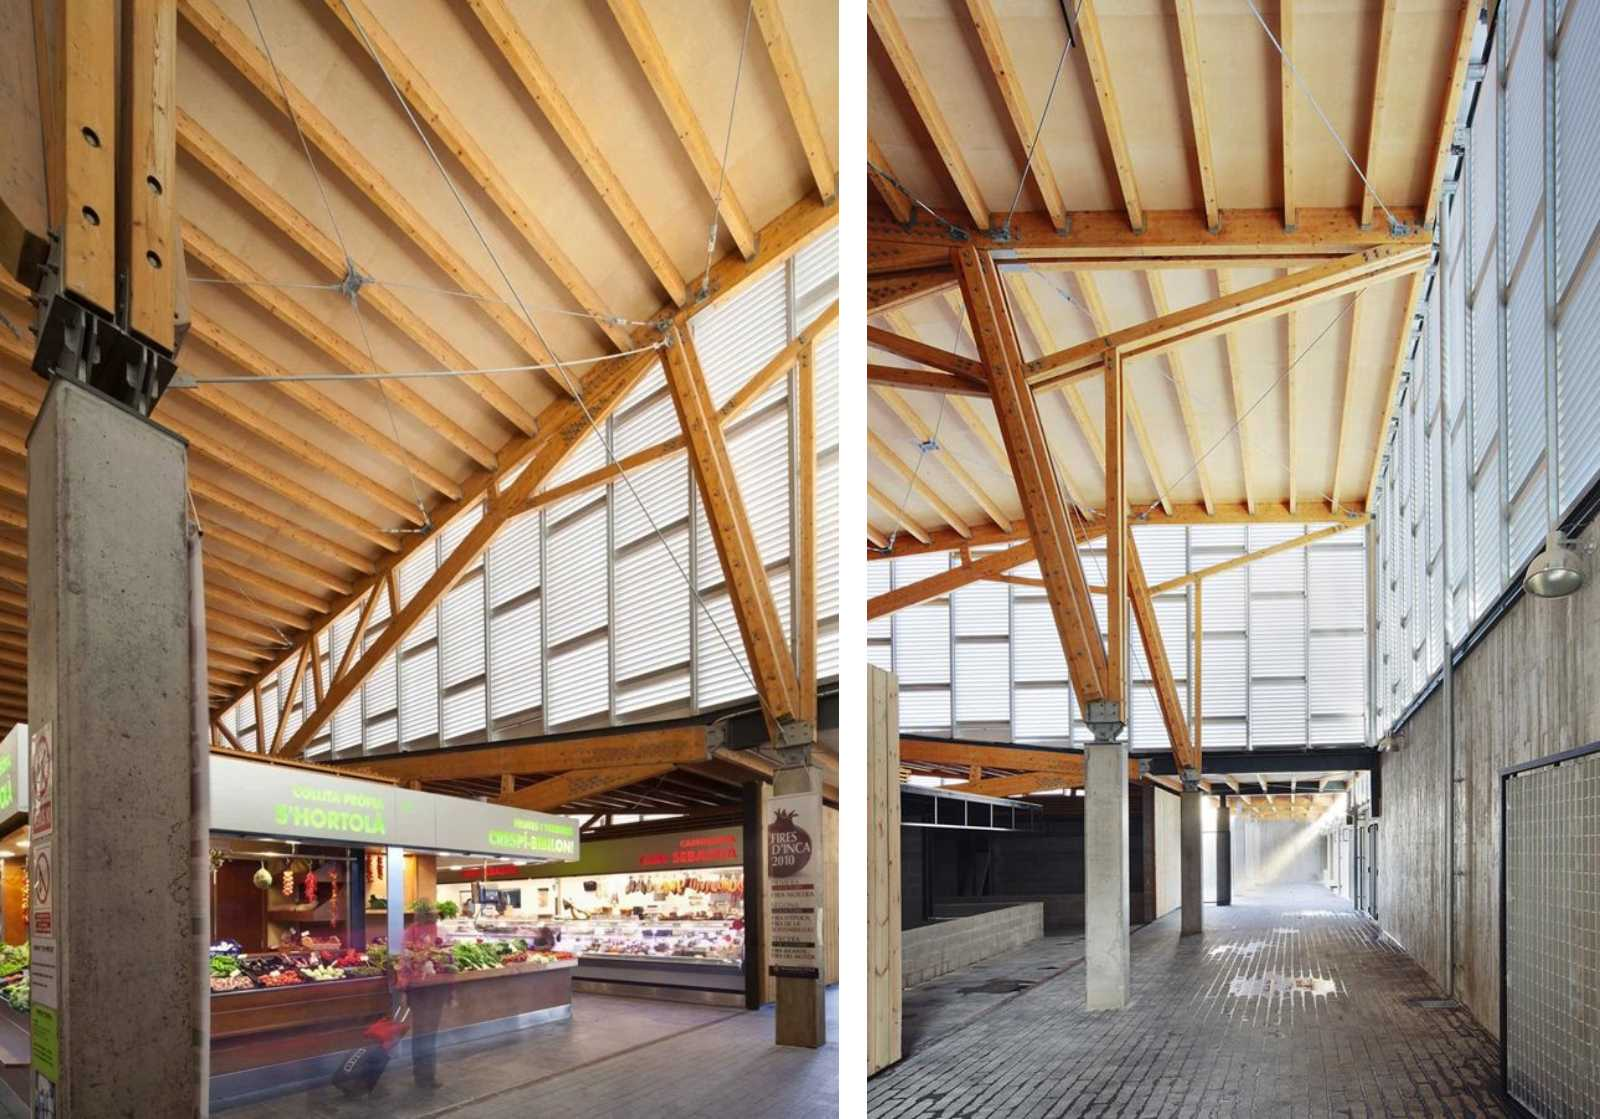 Inca Public Market By Charmaine Lay And Carles Muro A As